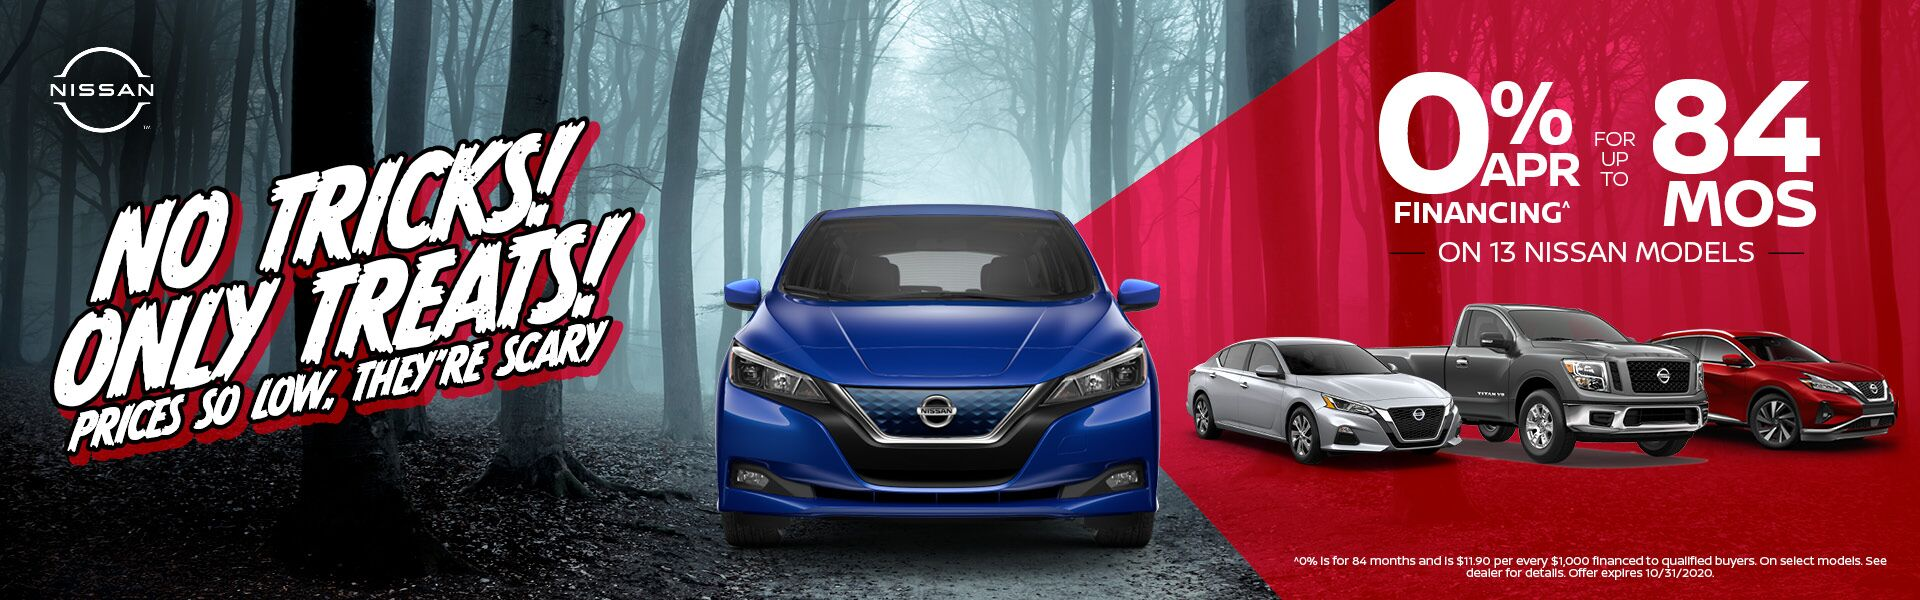 0% for 72 mos. on 9 Nissan Models